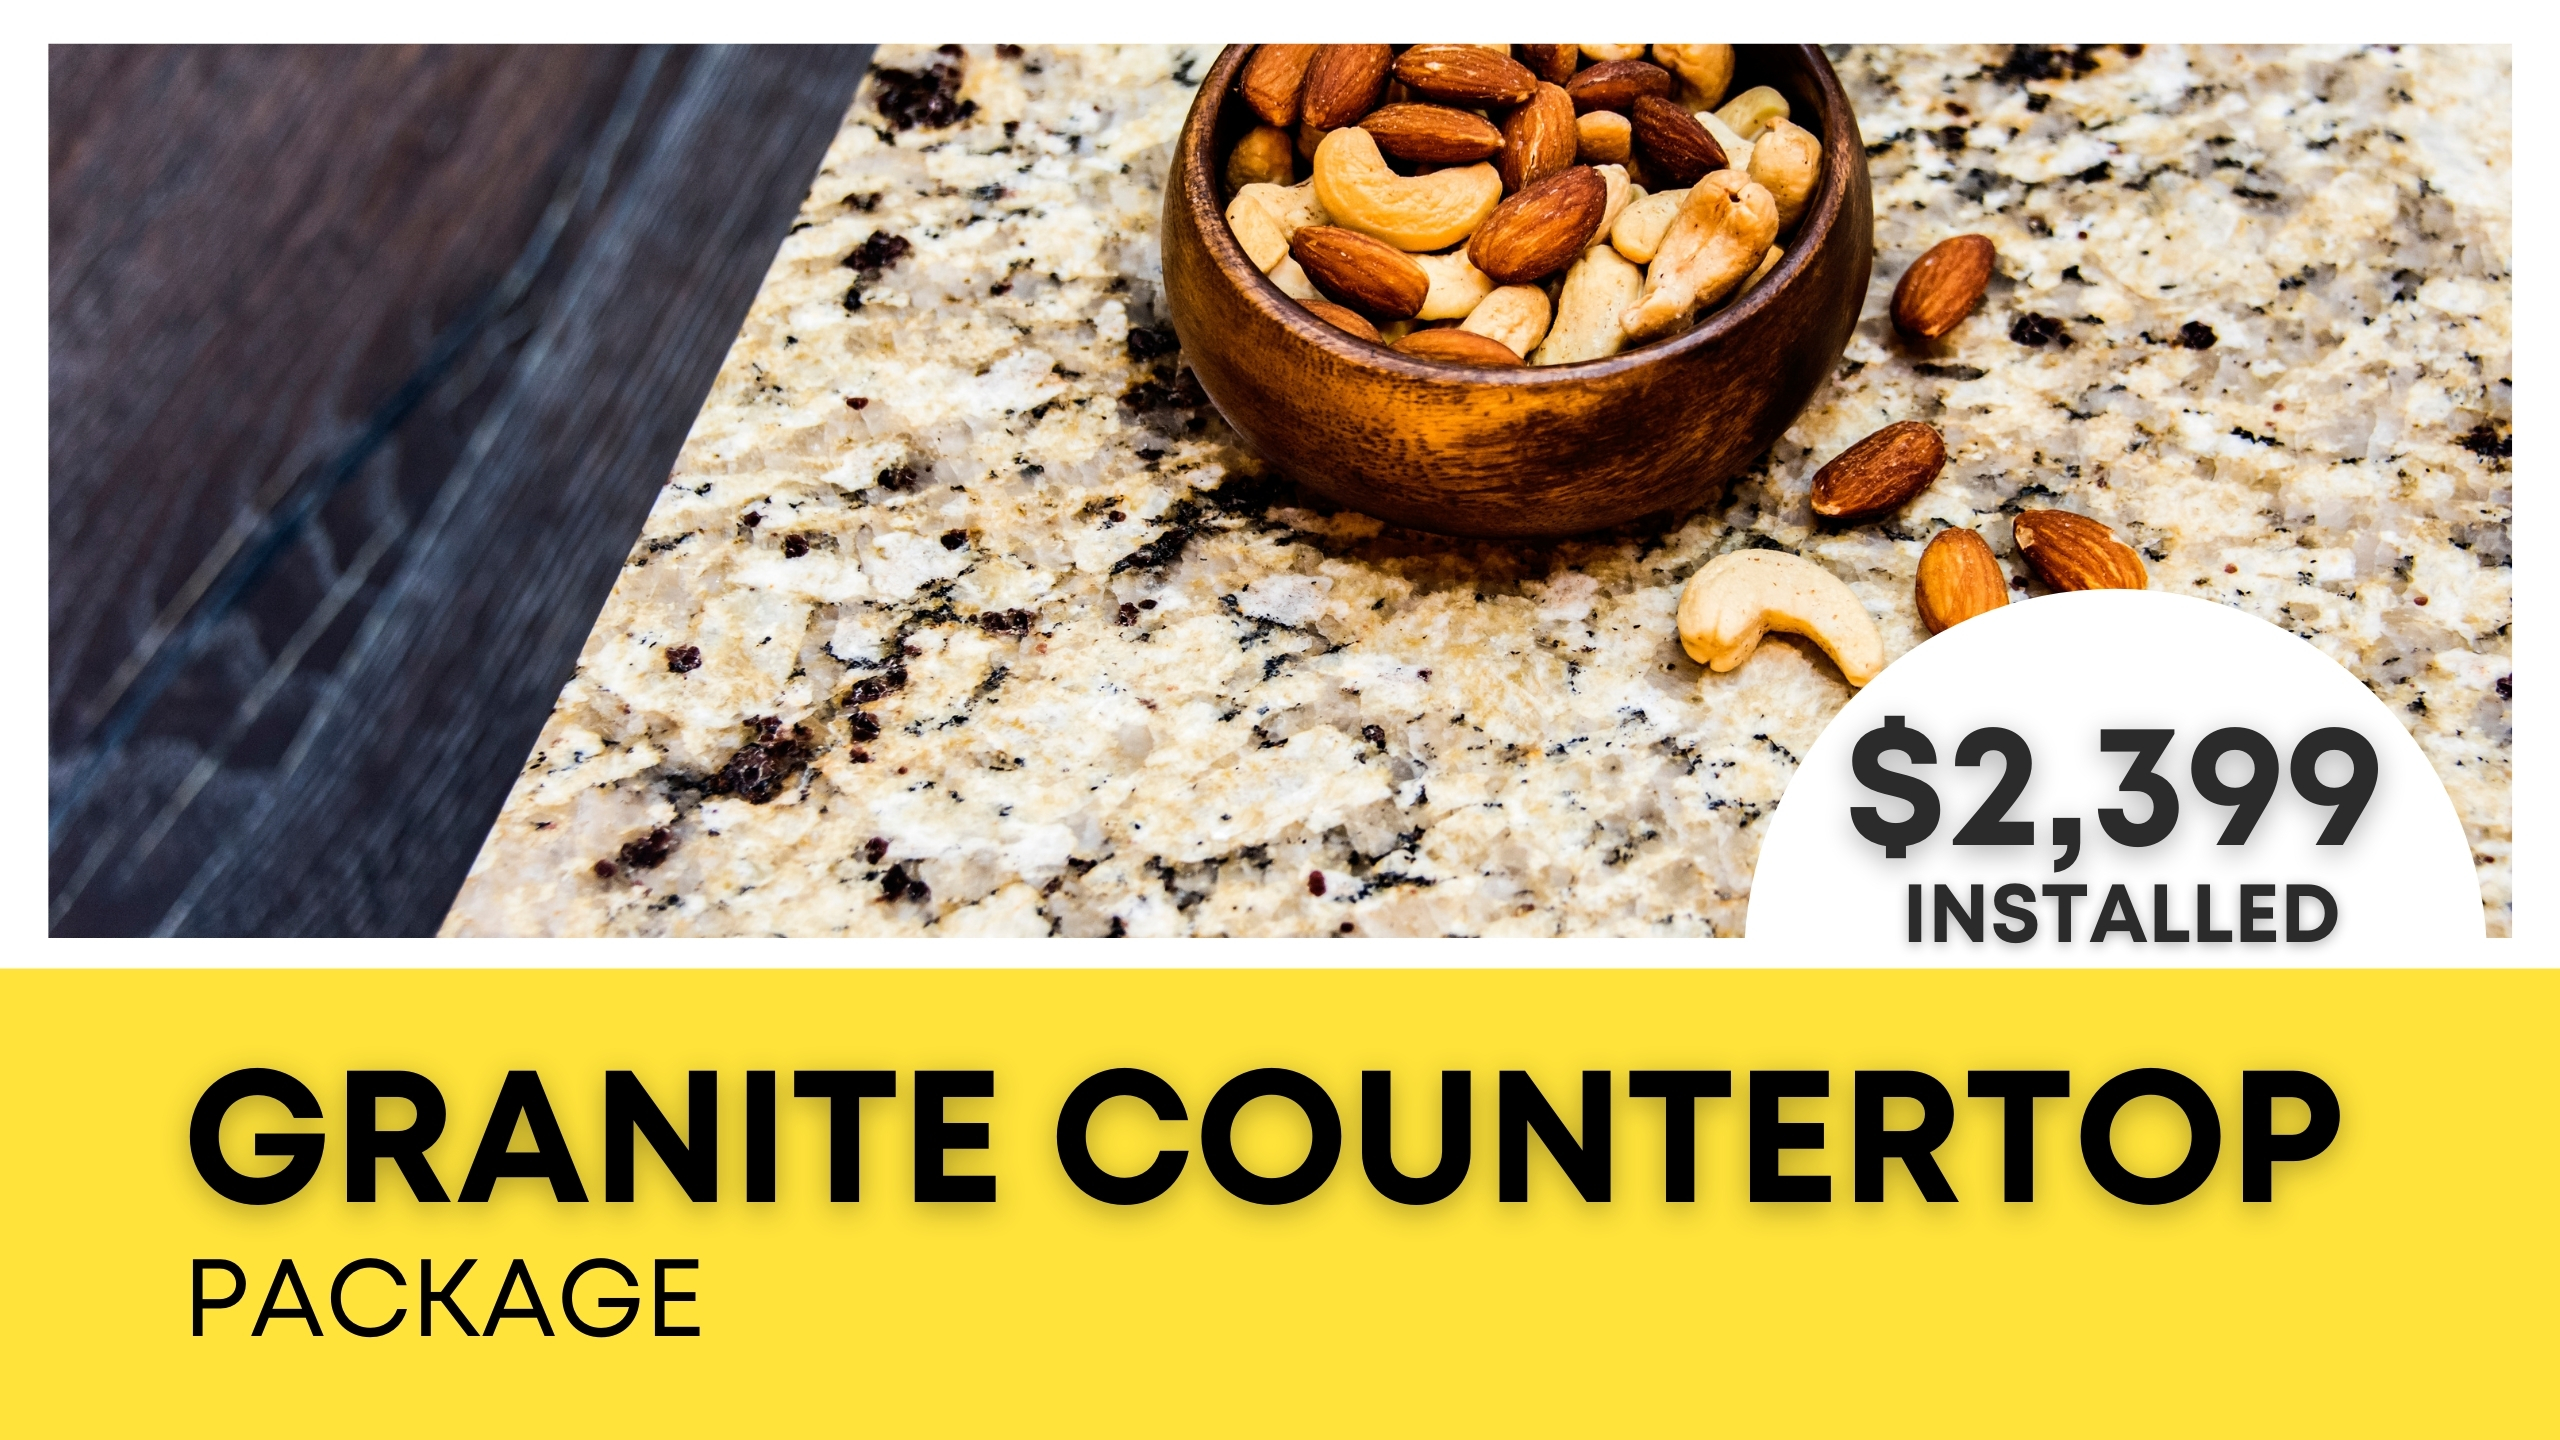 Tri Cities Youtube Cover Countertop Package 2399 2560 x 1440 px